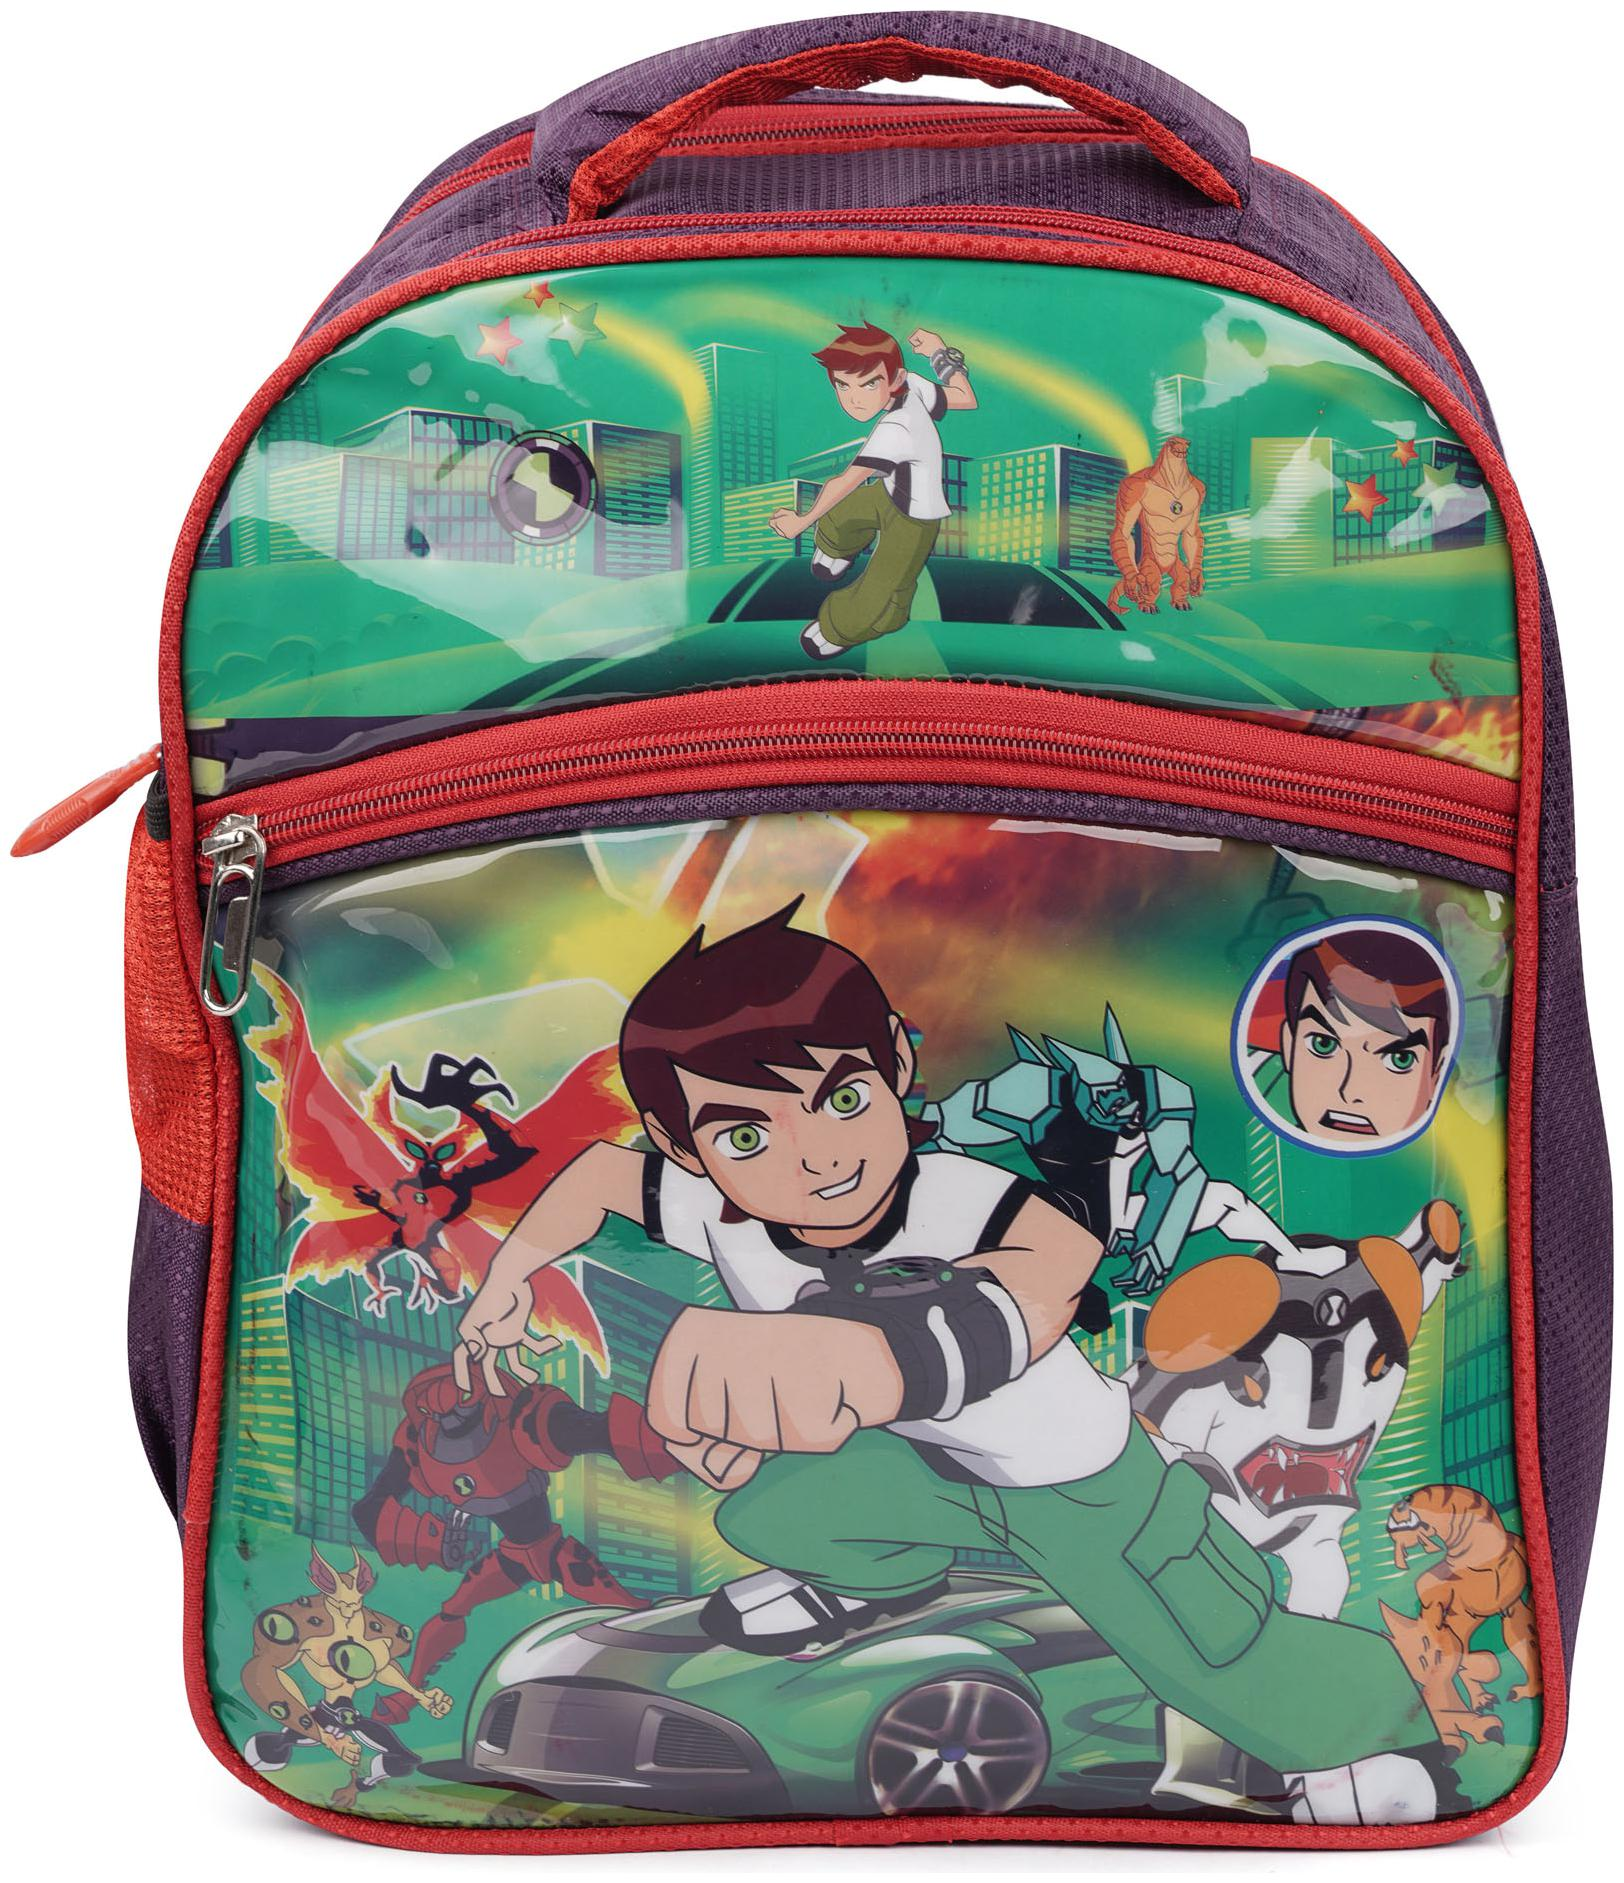 Three Shades School Bag Ben10 Waterproof School Bag   Multi